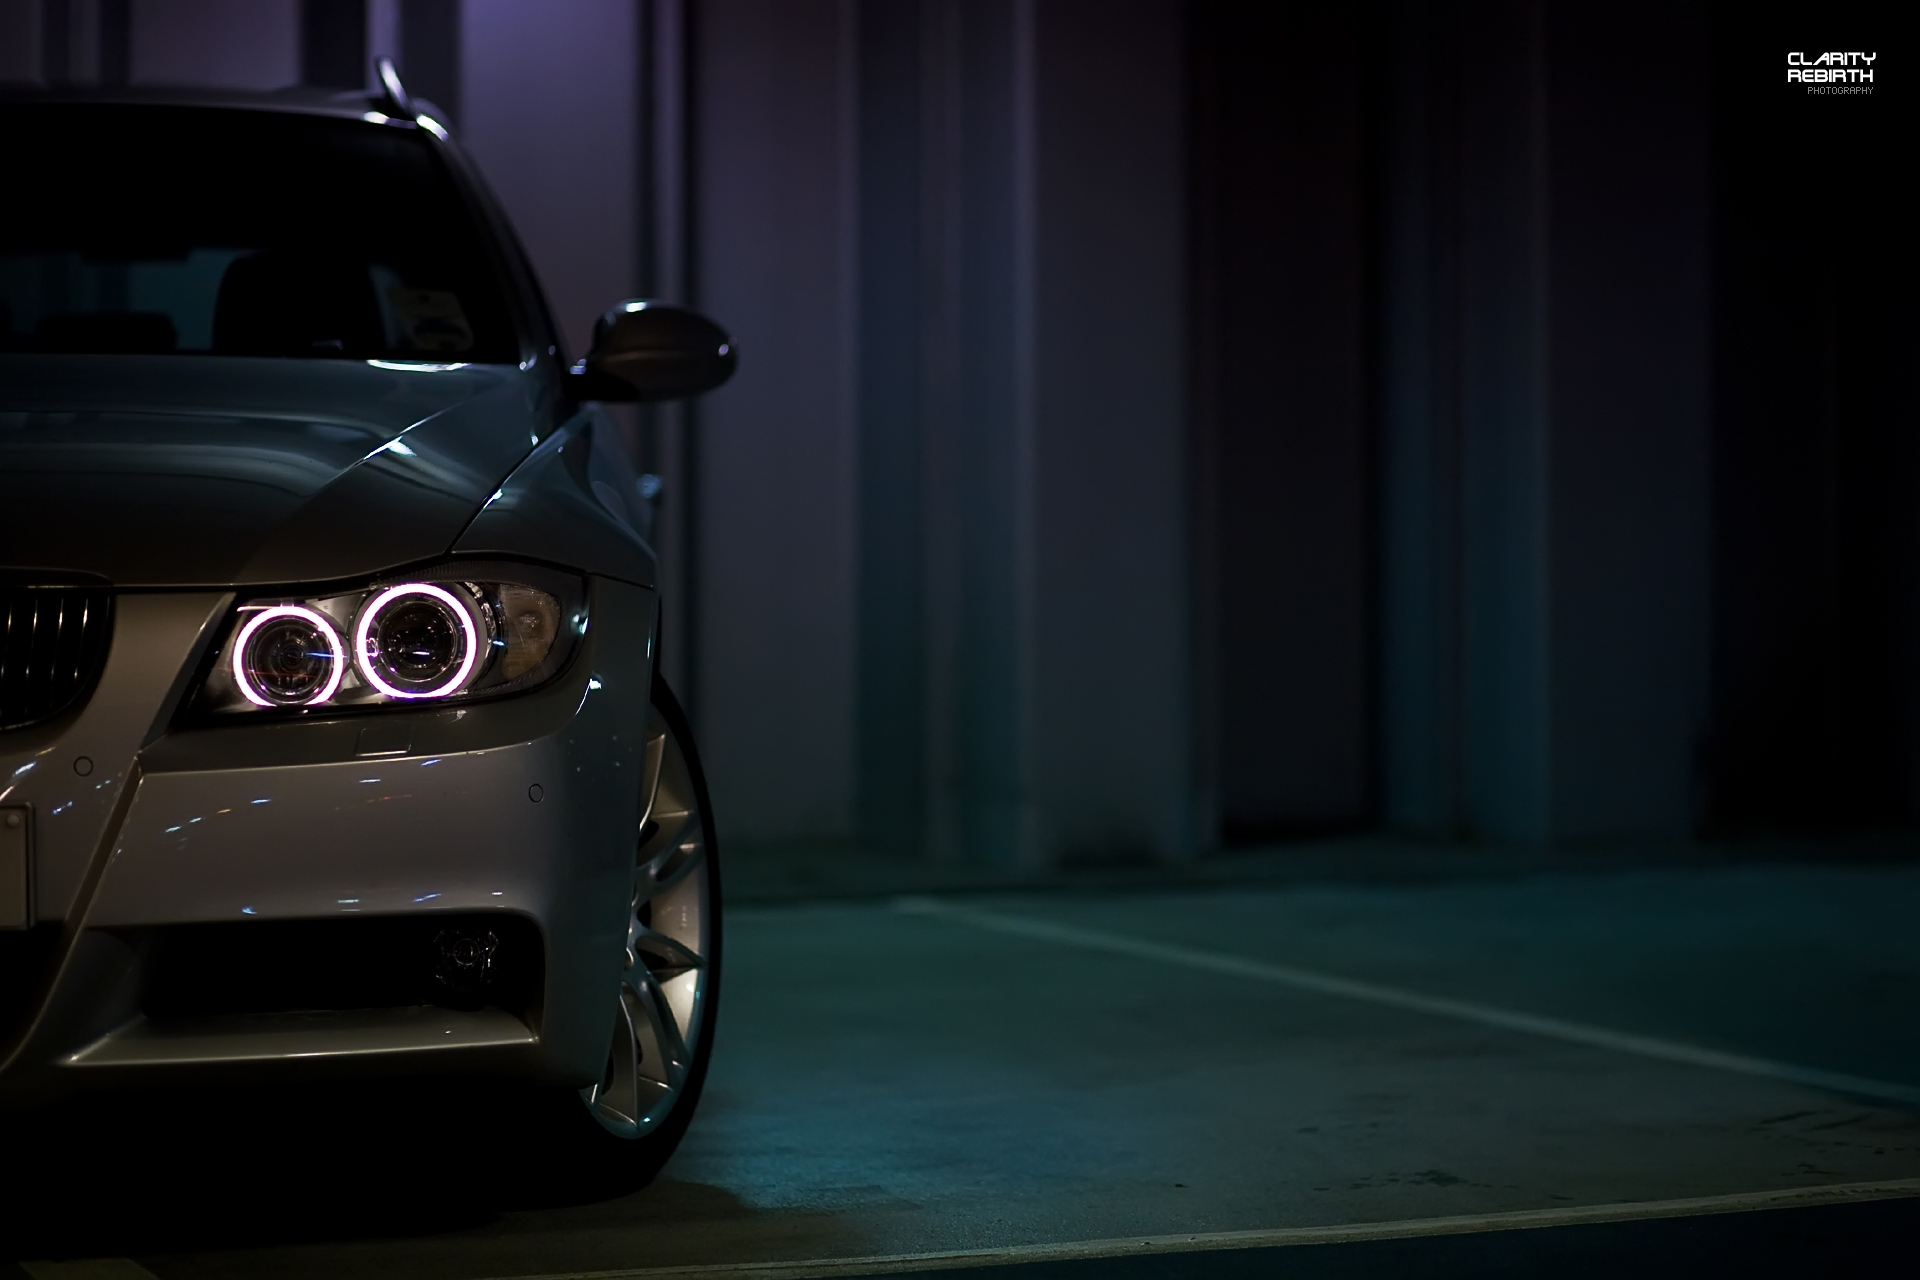 Lets_Hide_My_BMW_Wallpaper_by_Clarity_Rebirth.jpg